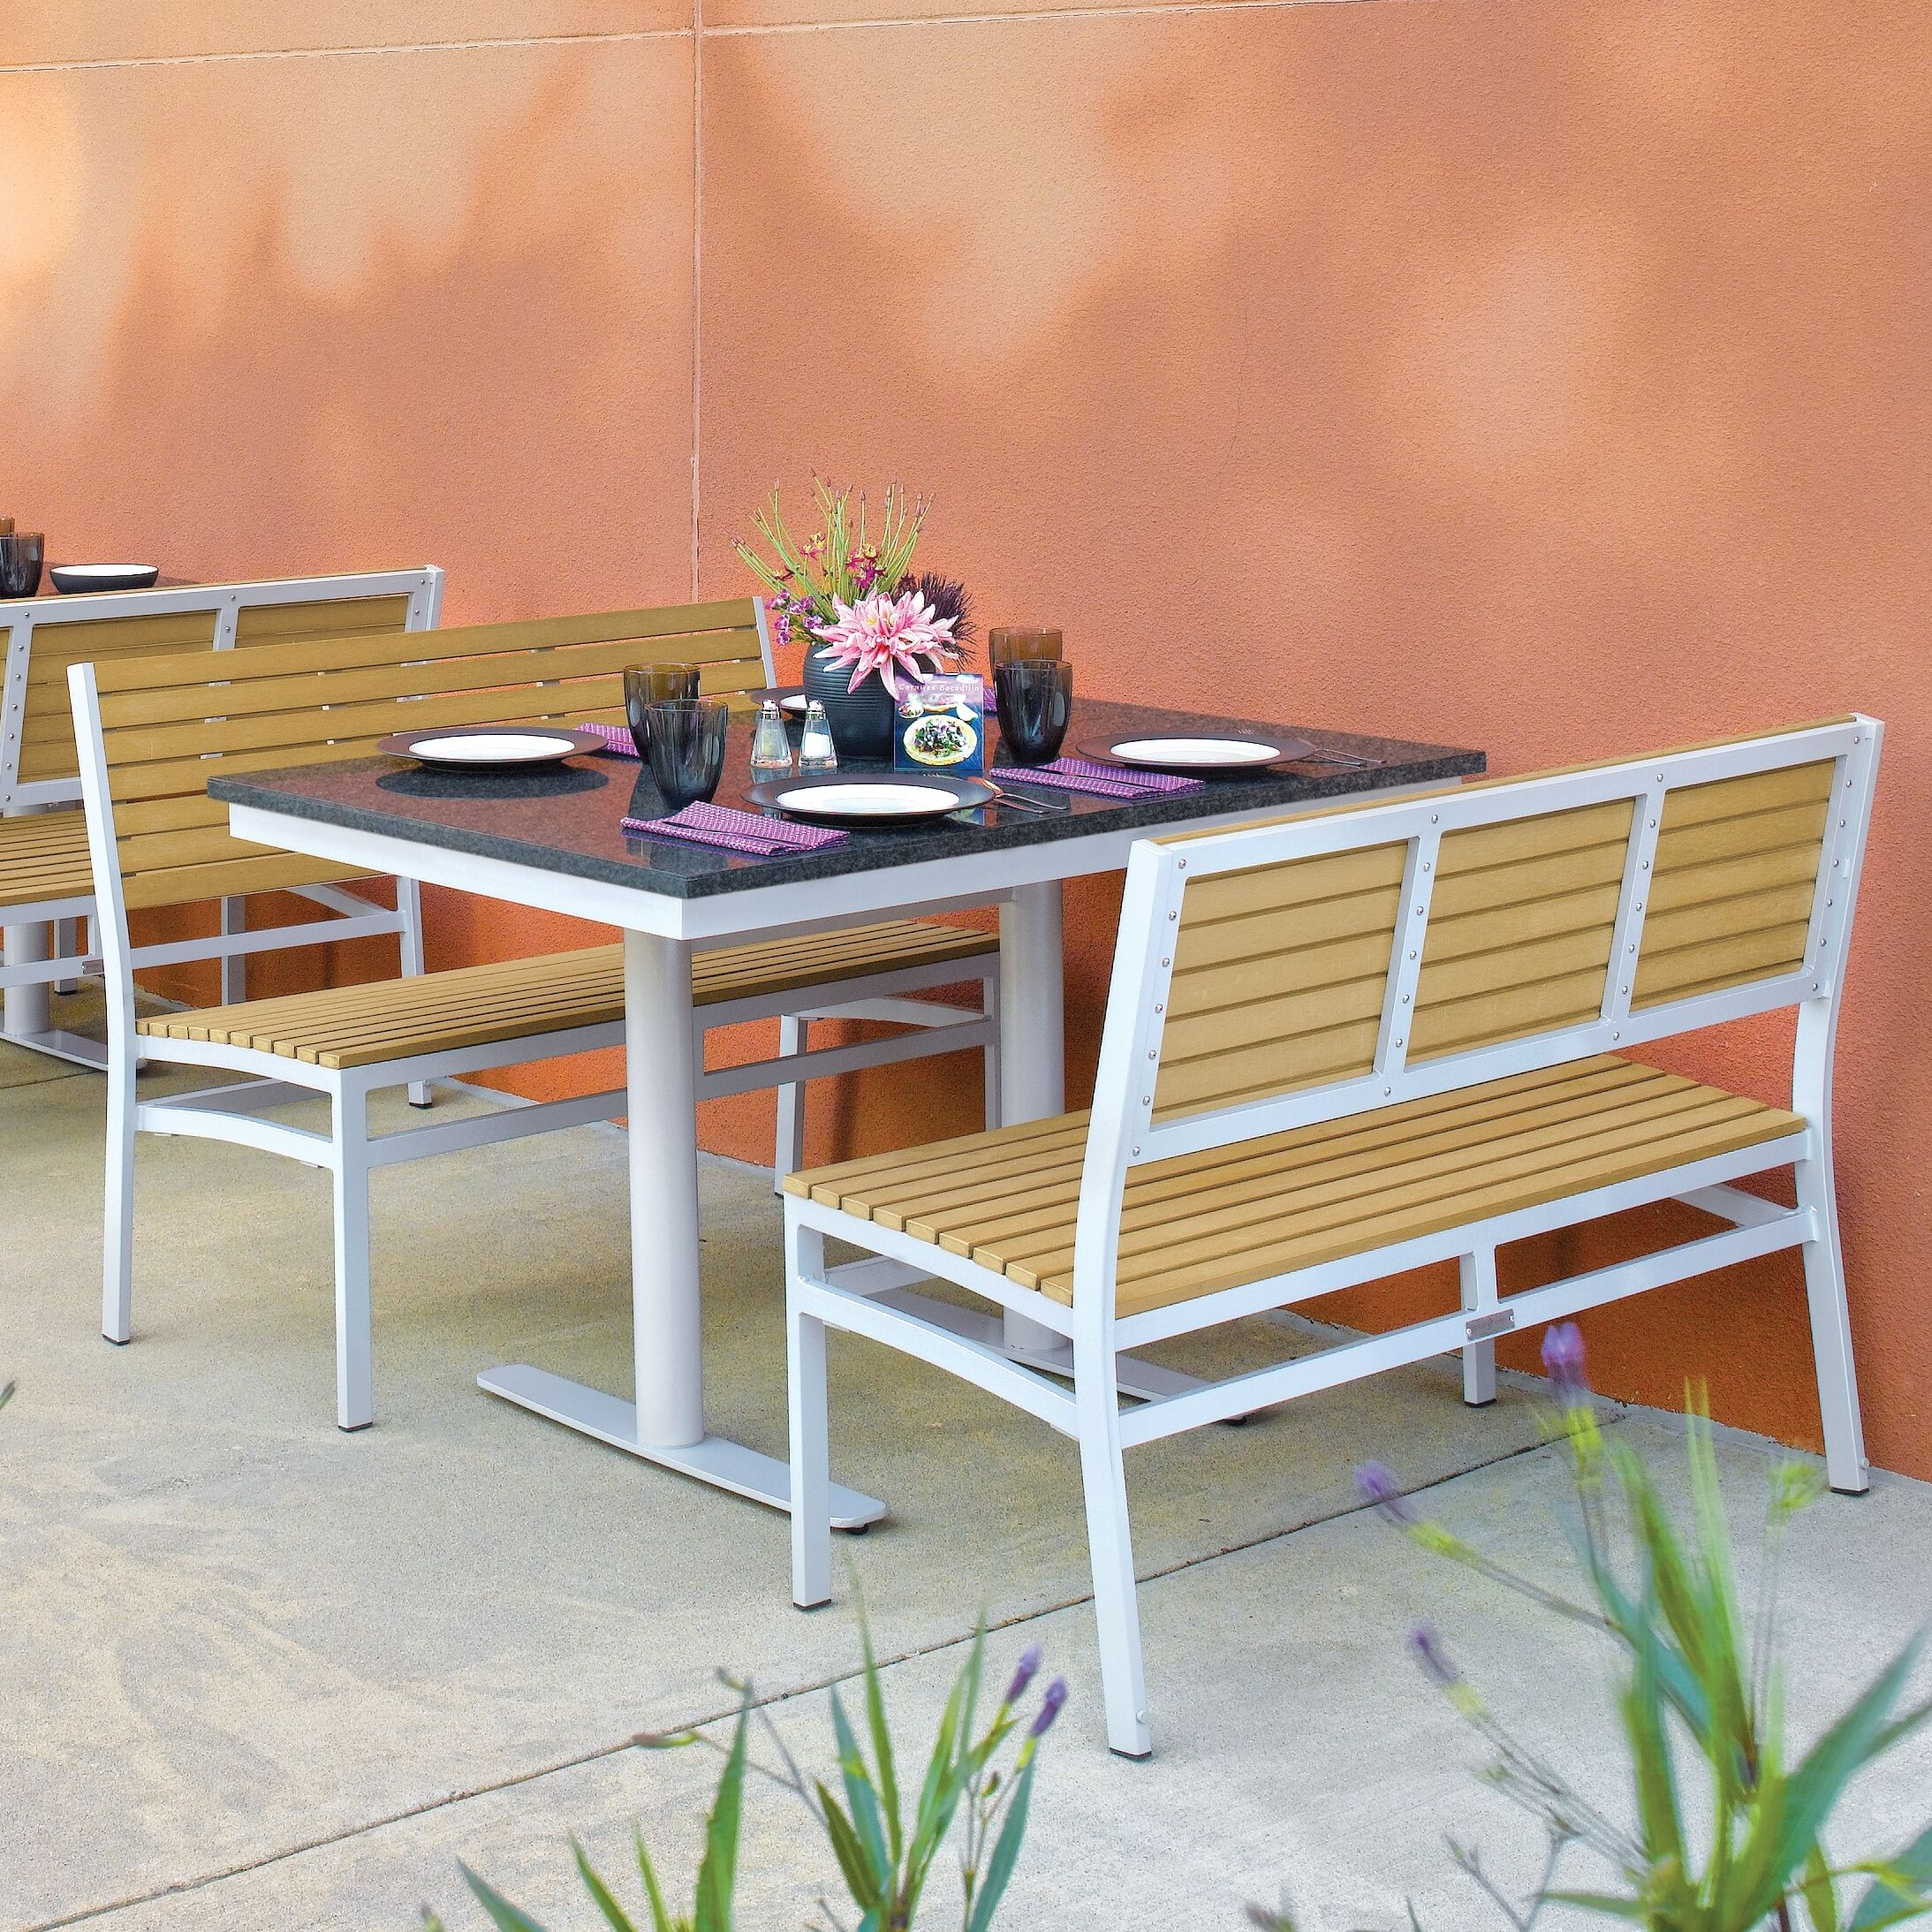 Lambright 3 Piece Teak Bistro Set Table Top Finish: Lite-Core Charcoal, Bench Finish: Tekwood Natural